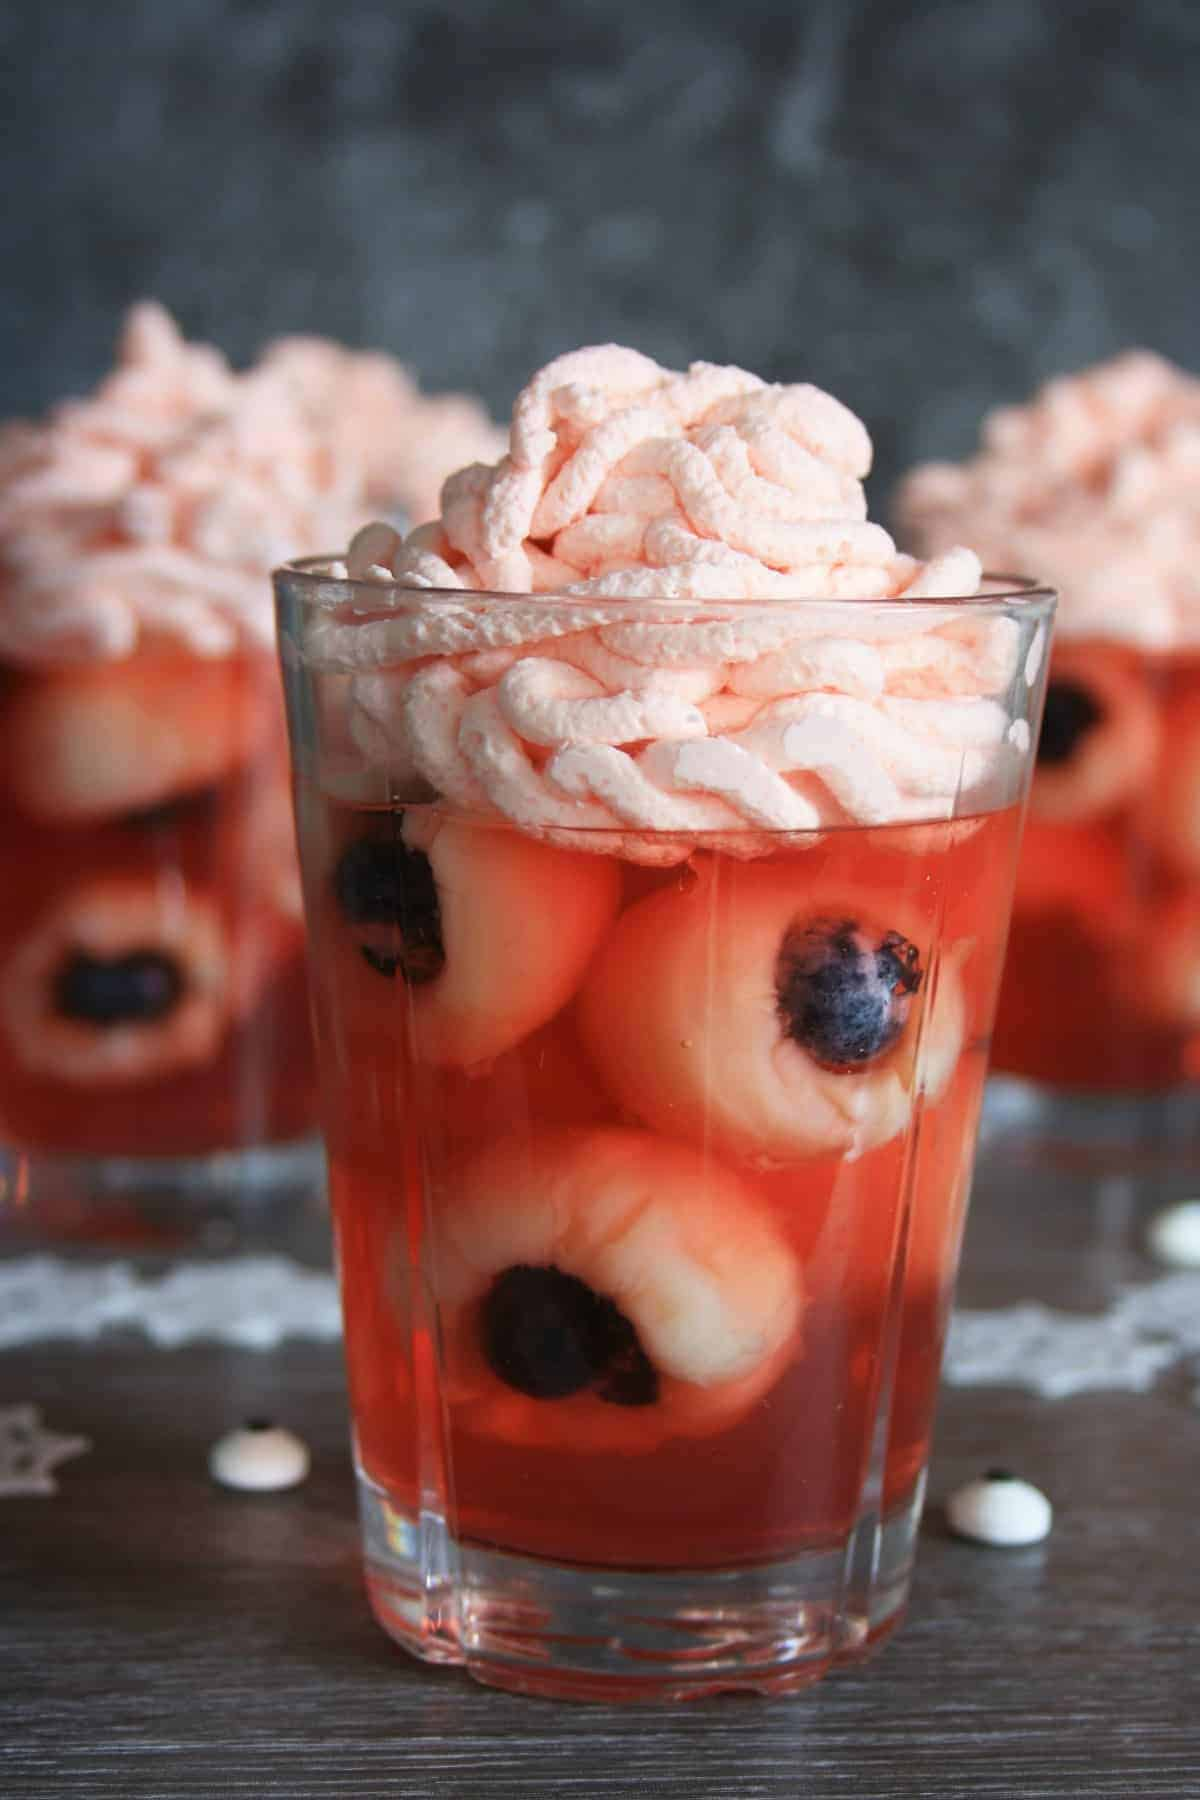 a front view of a glass filled with red jelly and lychee made to look like eyeballs